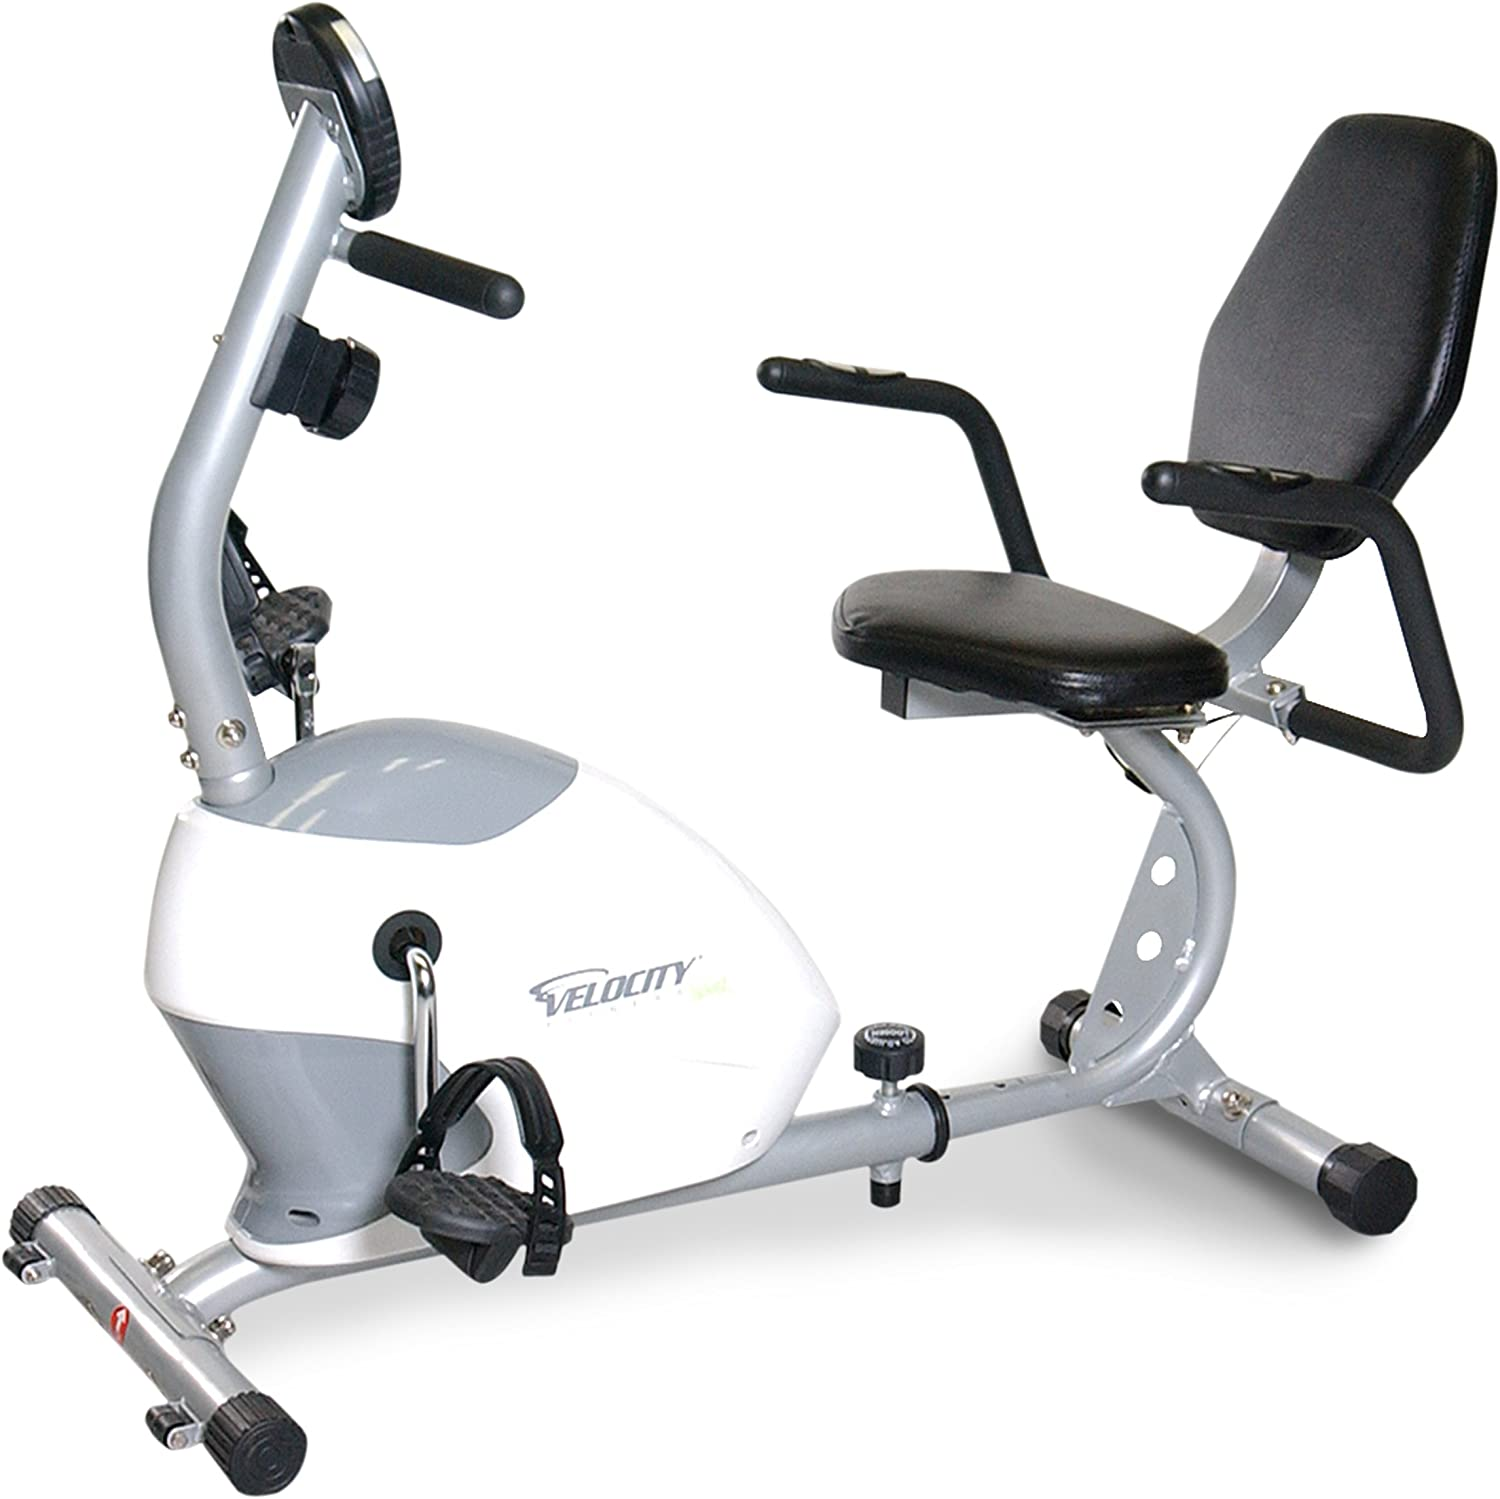 EXERCISE BICYCLES FOR SENIOR CITIZENS